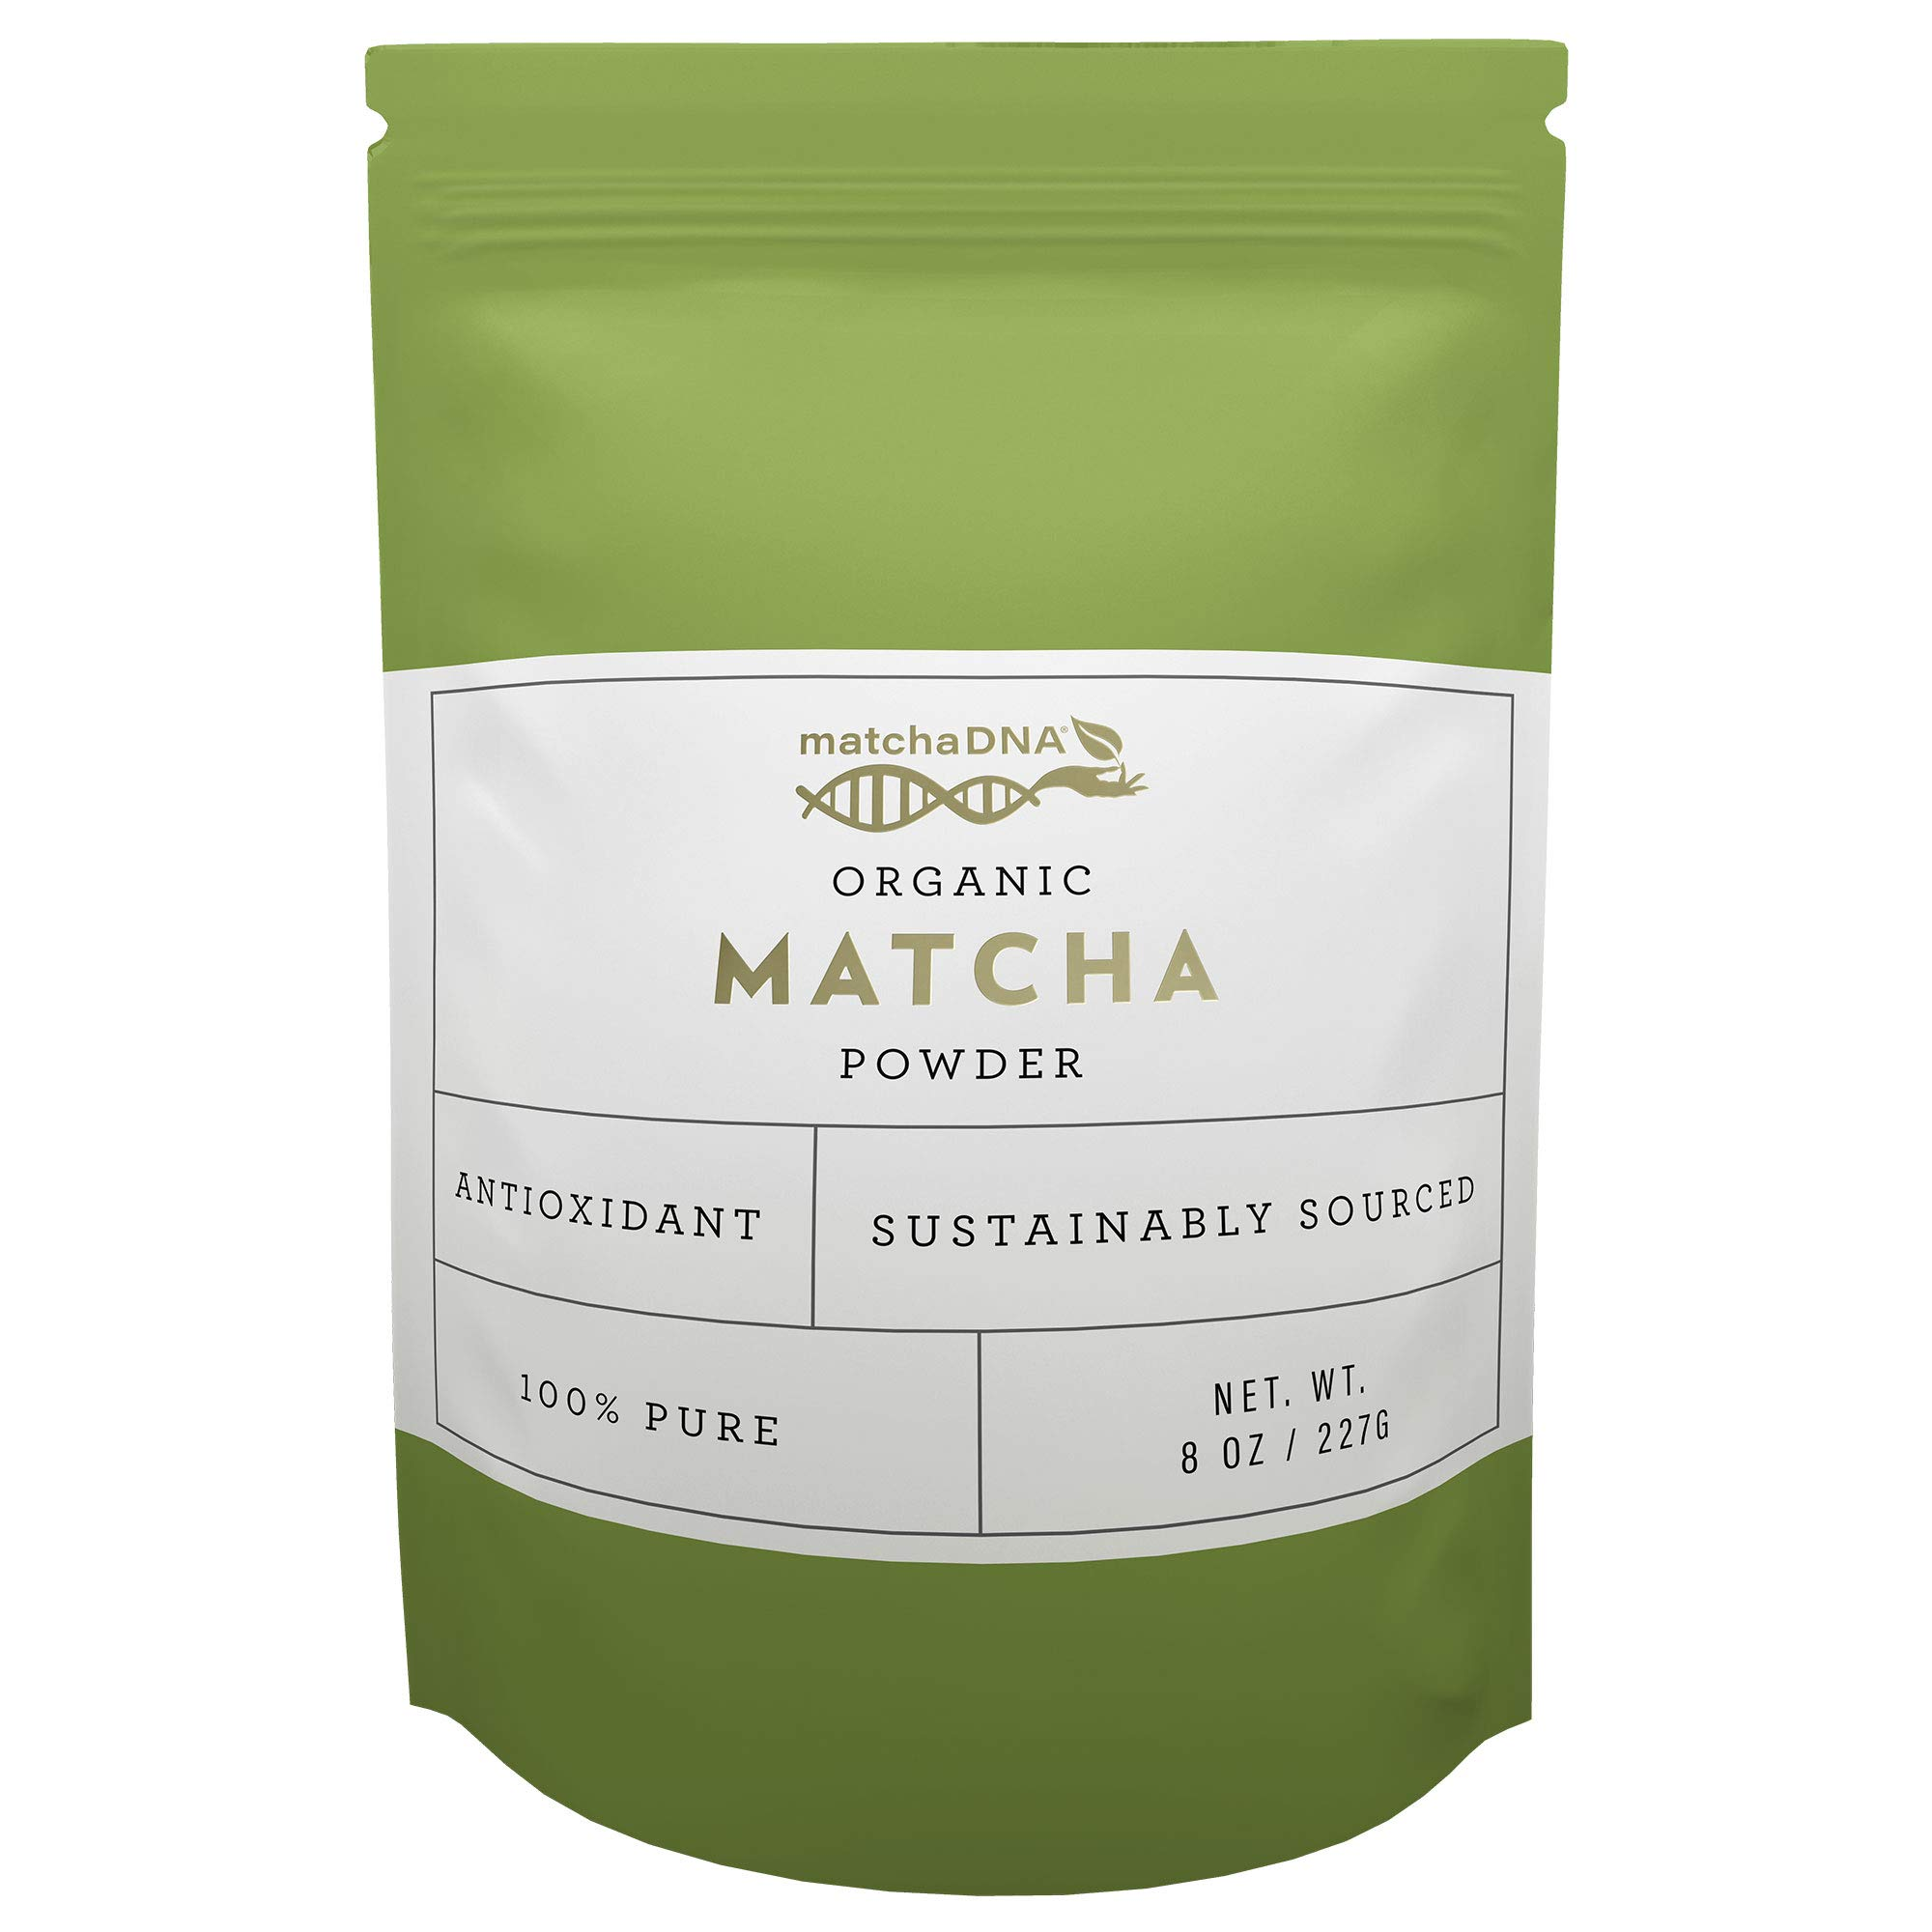 MatchaDNA USDA Organic Matcha Green Tea Powder Culinary Grade Powdered Matcha - High in antioxidants - 8 oz